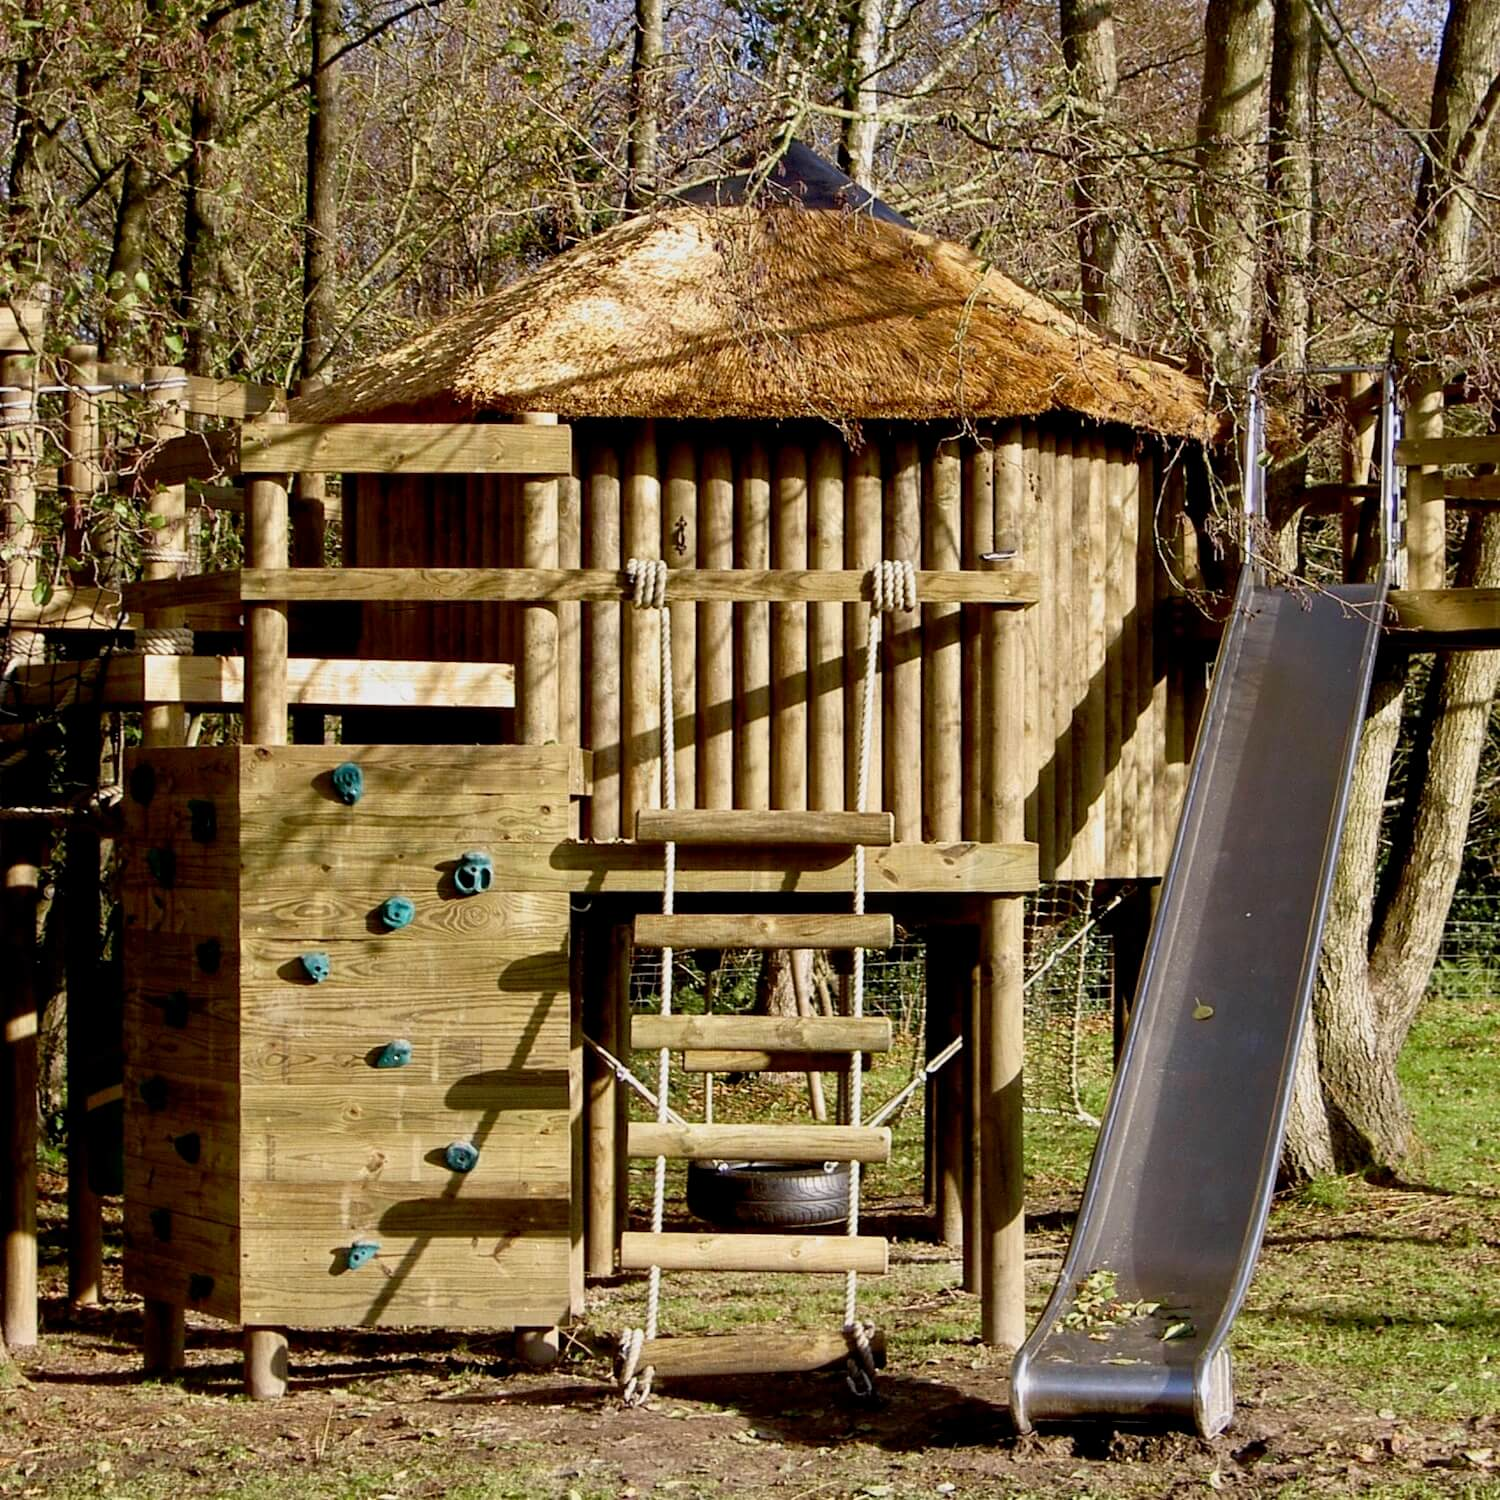 Treehouse, Slide, Rope Ladder and Climbing Wall